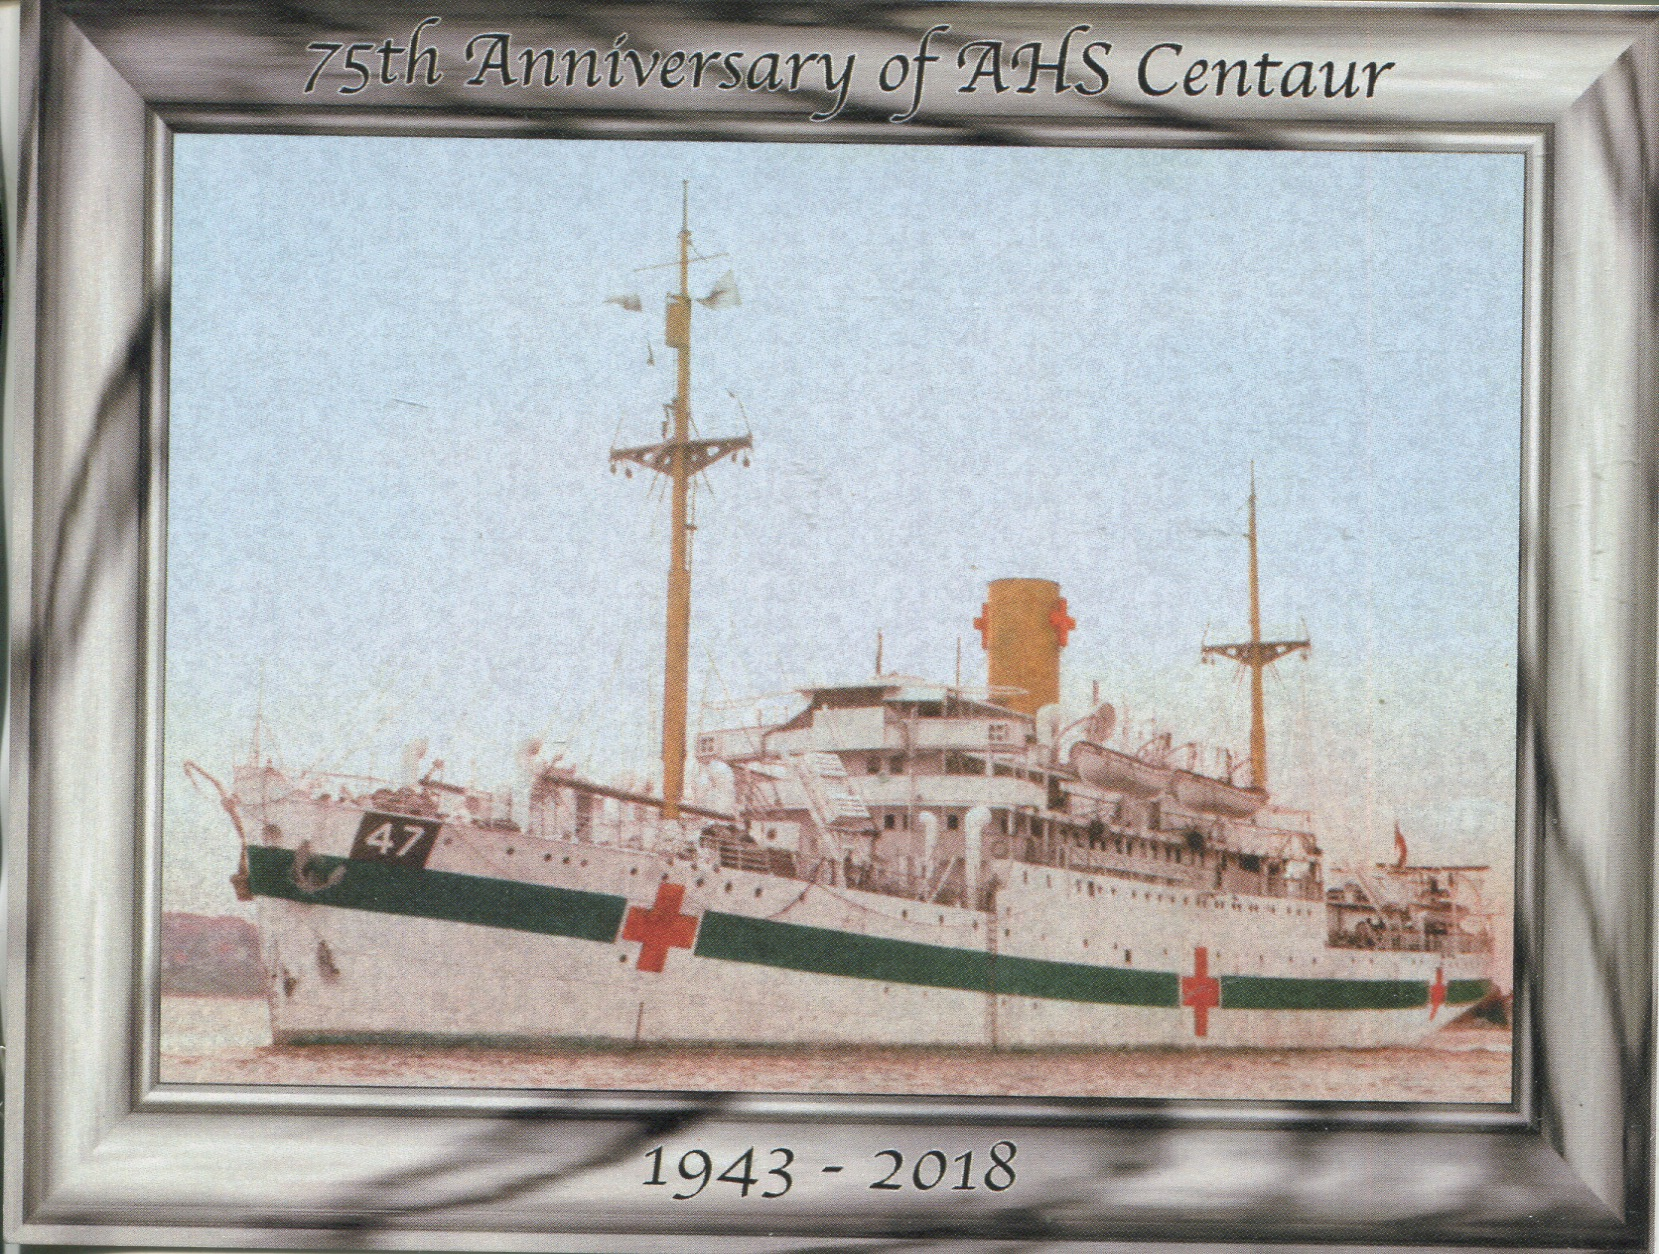 75th Anniversary of the Loss of AHS Centaur (WWII)